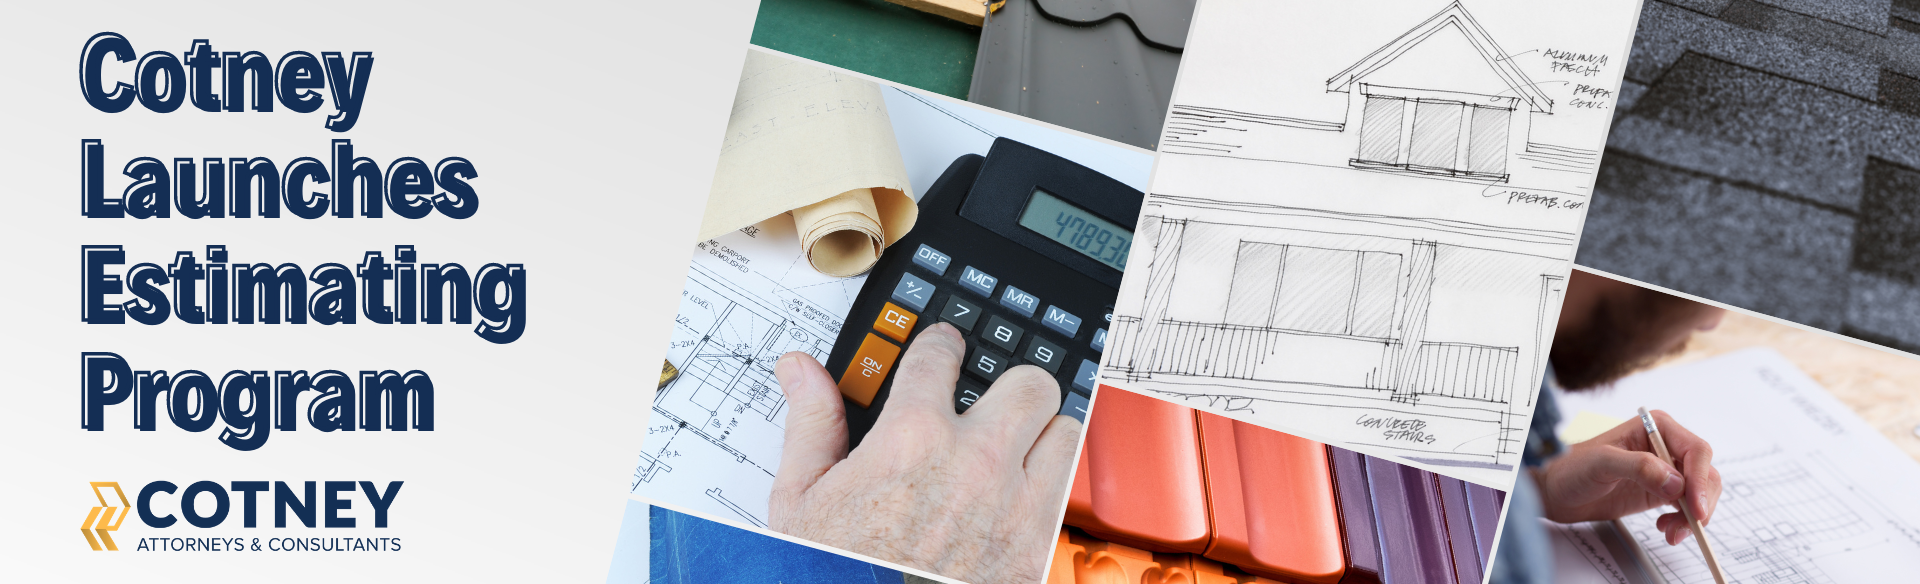 Cotney Attorneys & Consultants Launches Roofing Estimating Training Program featured image